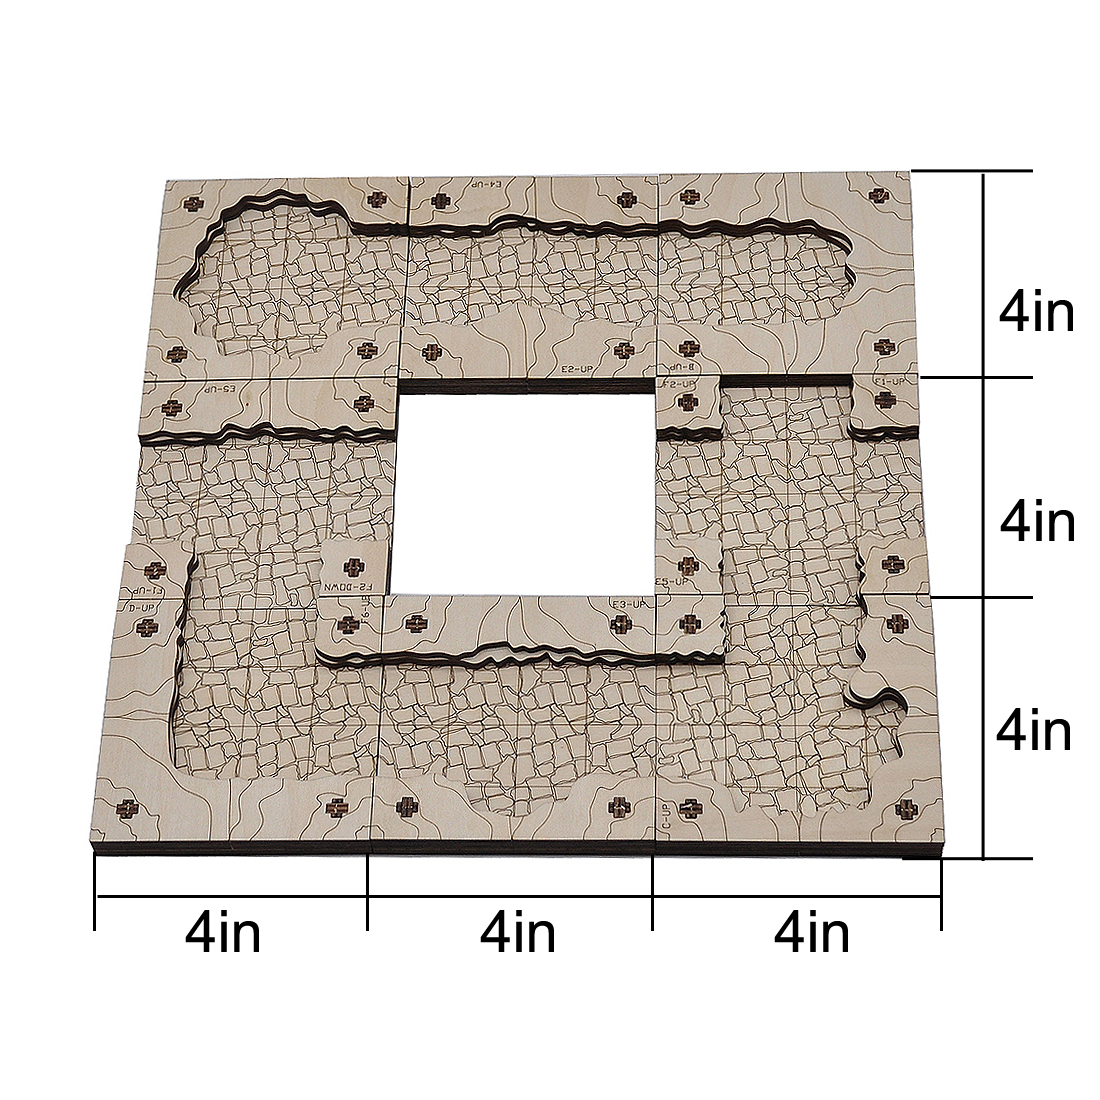 Dungeon Cavern Tiles Set Wood Laser-Cut Modular Terrain Customizable Tunnels Battle Map for Pathfinder, D&D and Other Tabletop RPGs (Cavern Tiles)